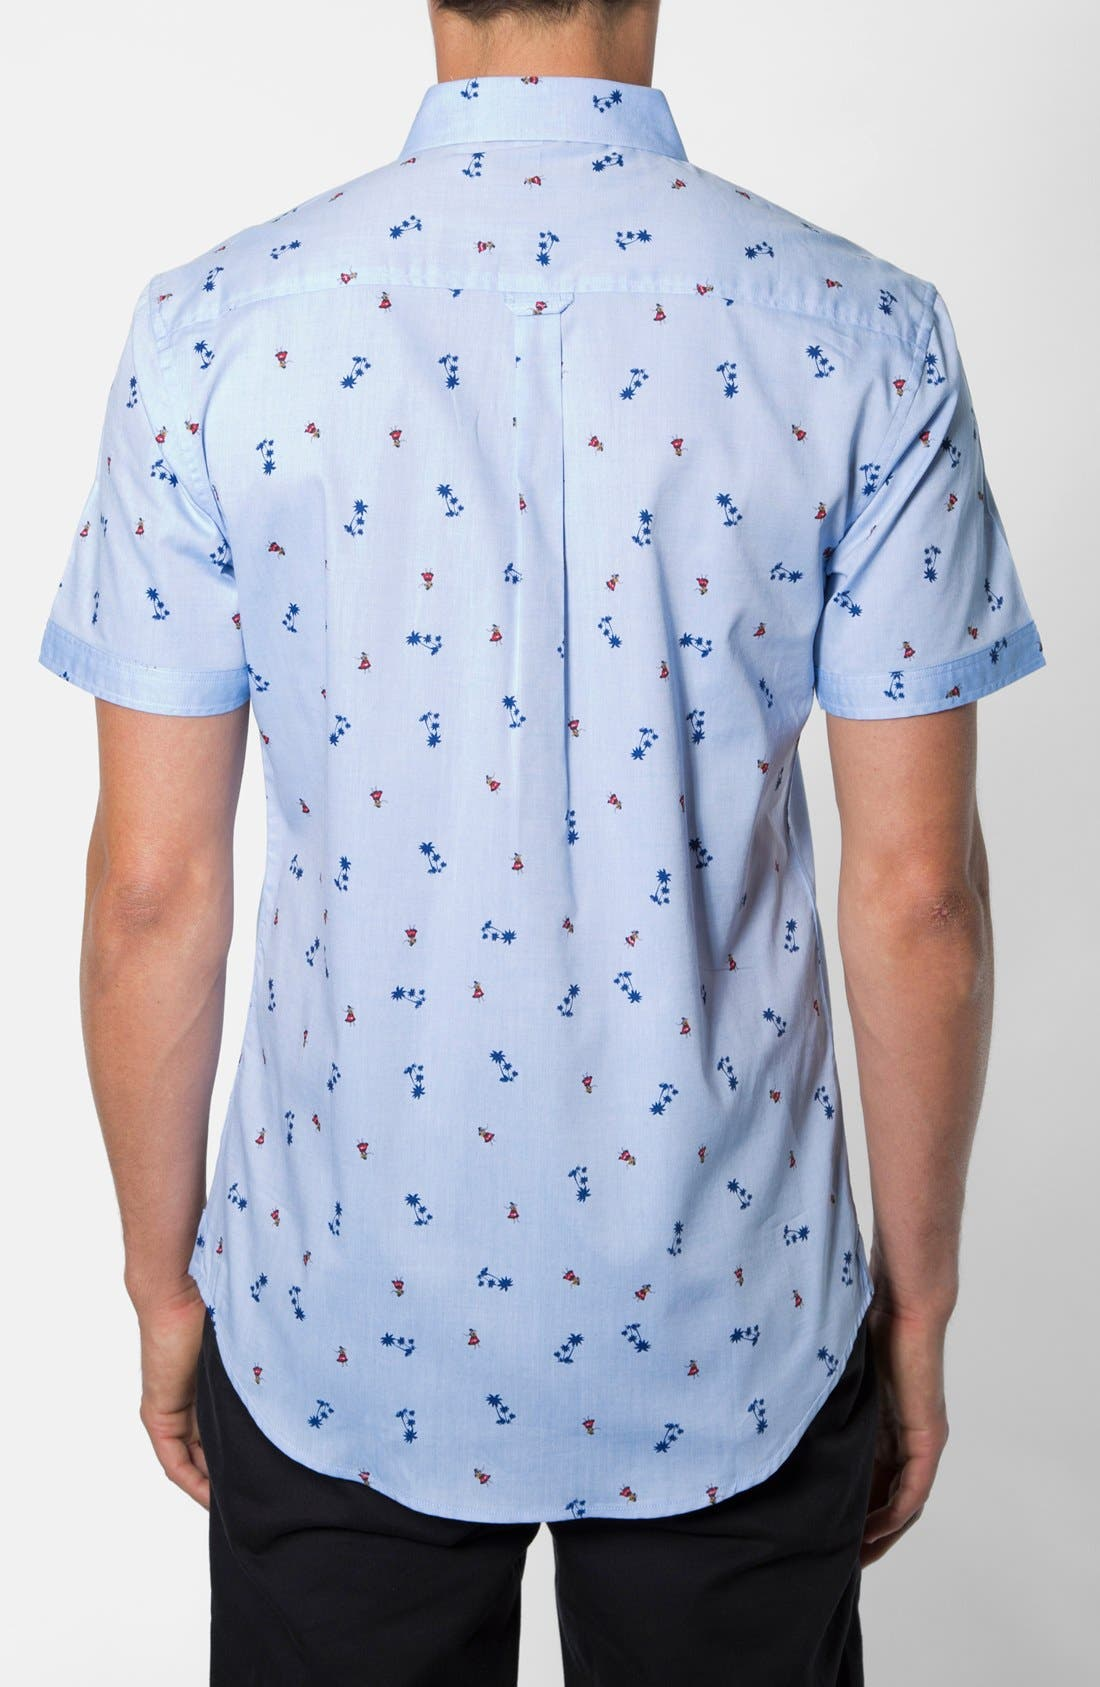 'California Sway' Trim Fit Short Sleeve Print Woven Shirt,                             Alternate thumbnail 2, color,                             451